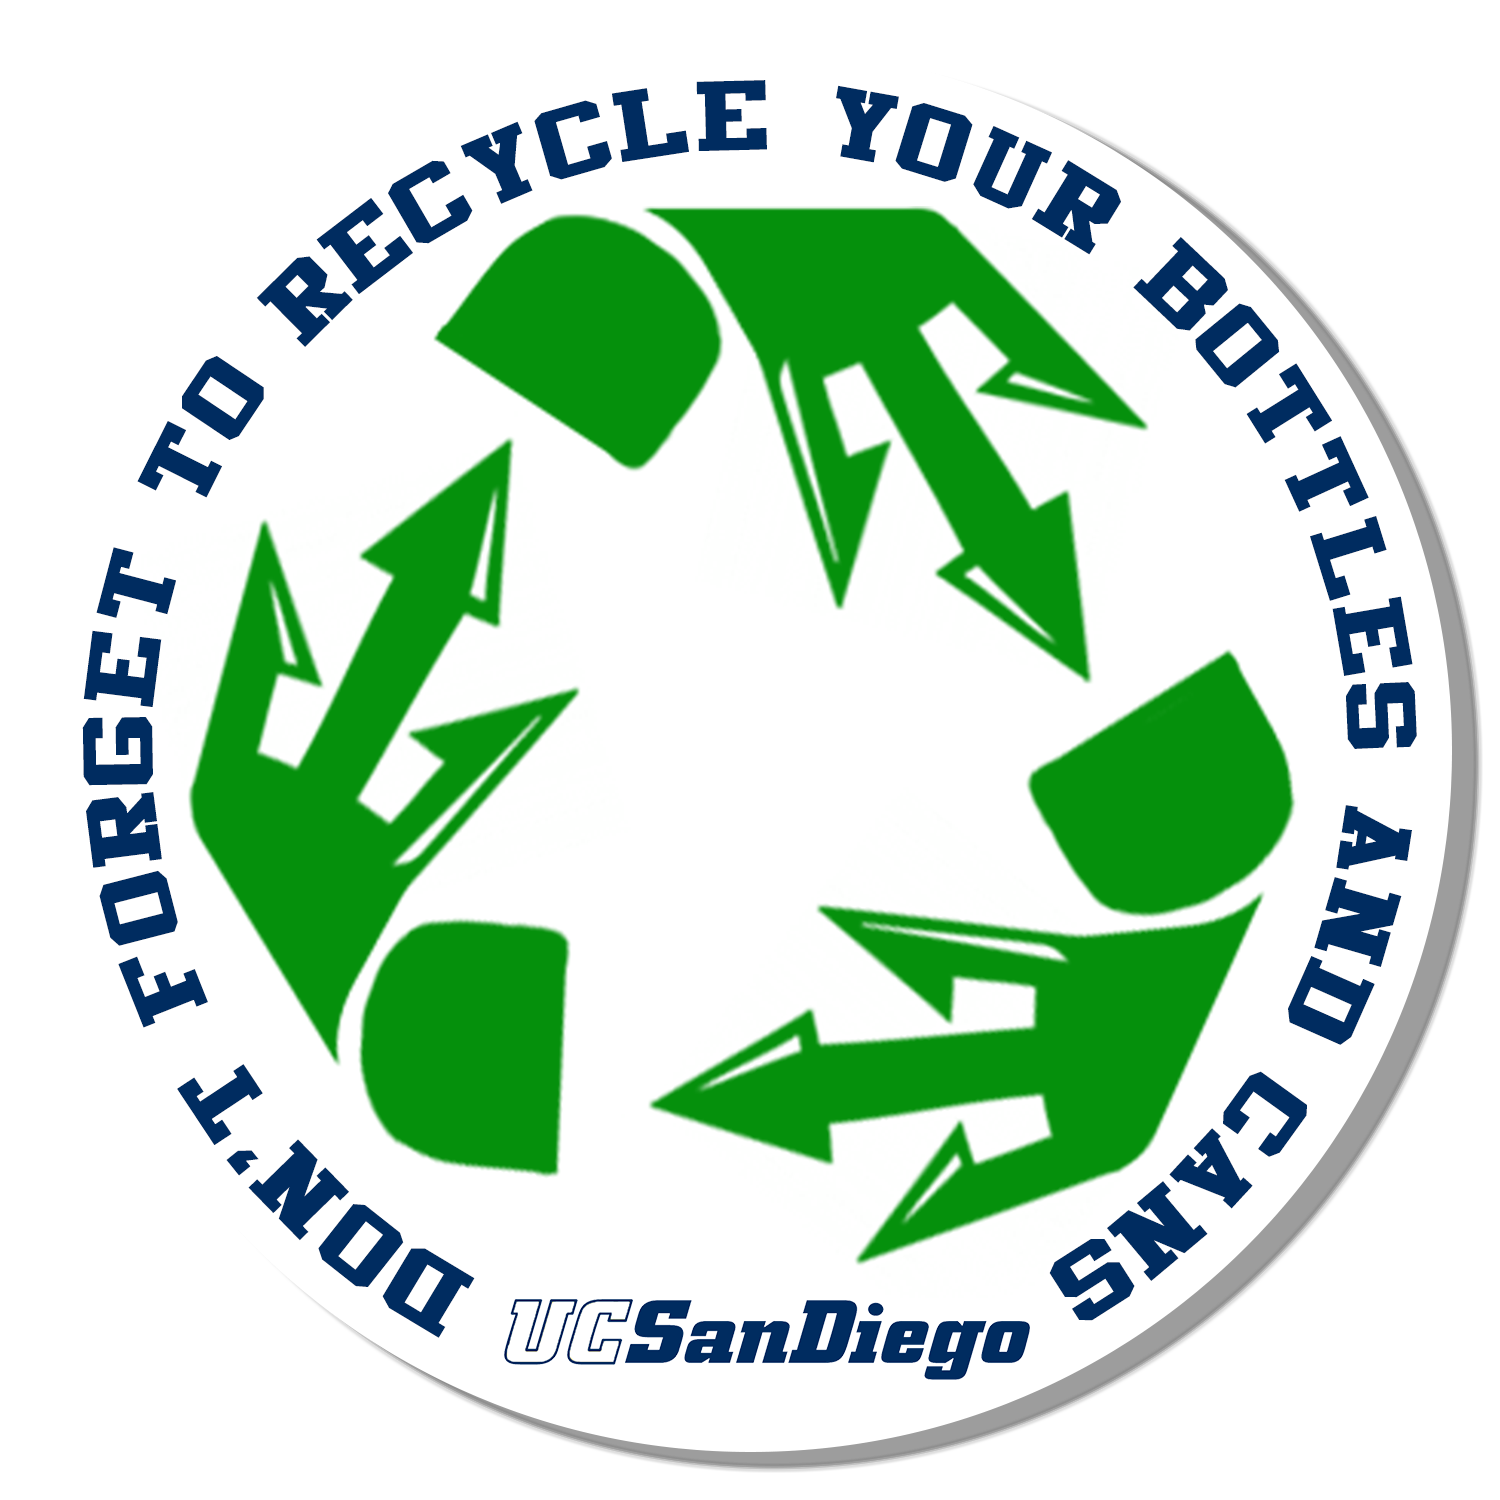 Official Sustainability Campaign Logo used as an asset on all materials related to project.